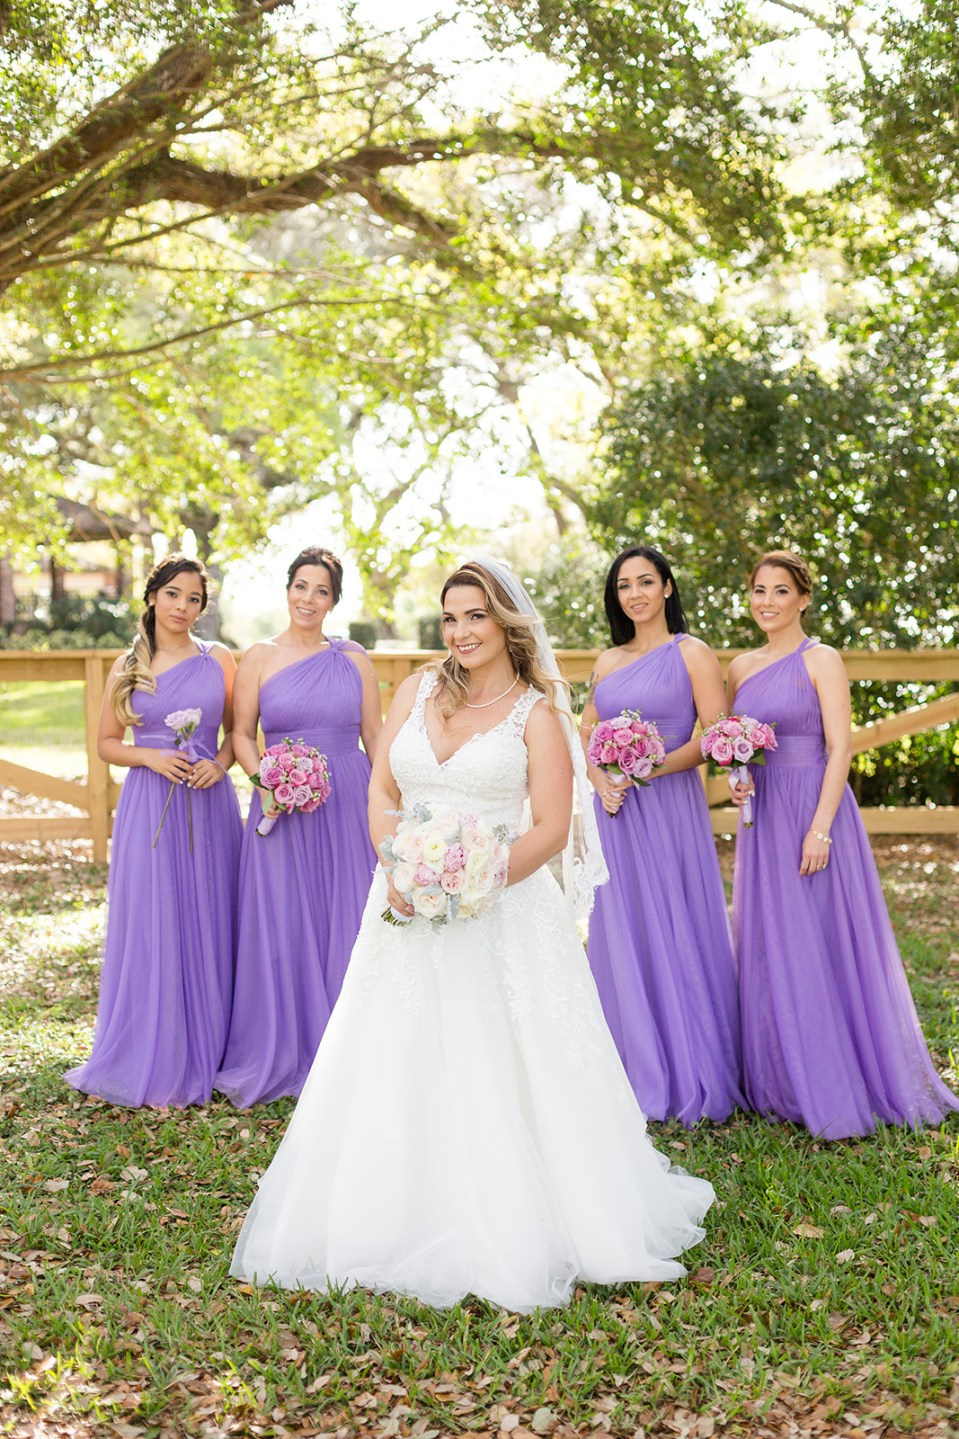 bride smiling with group of bridesmaids wearing purple dresses